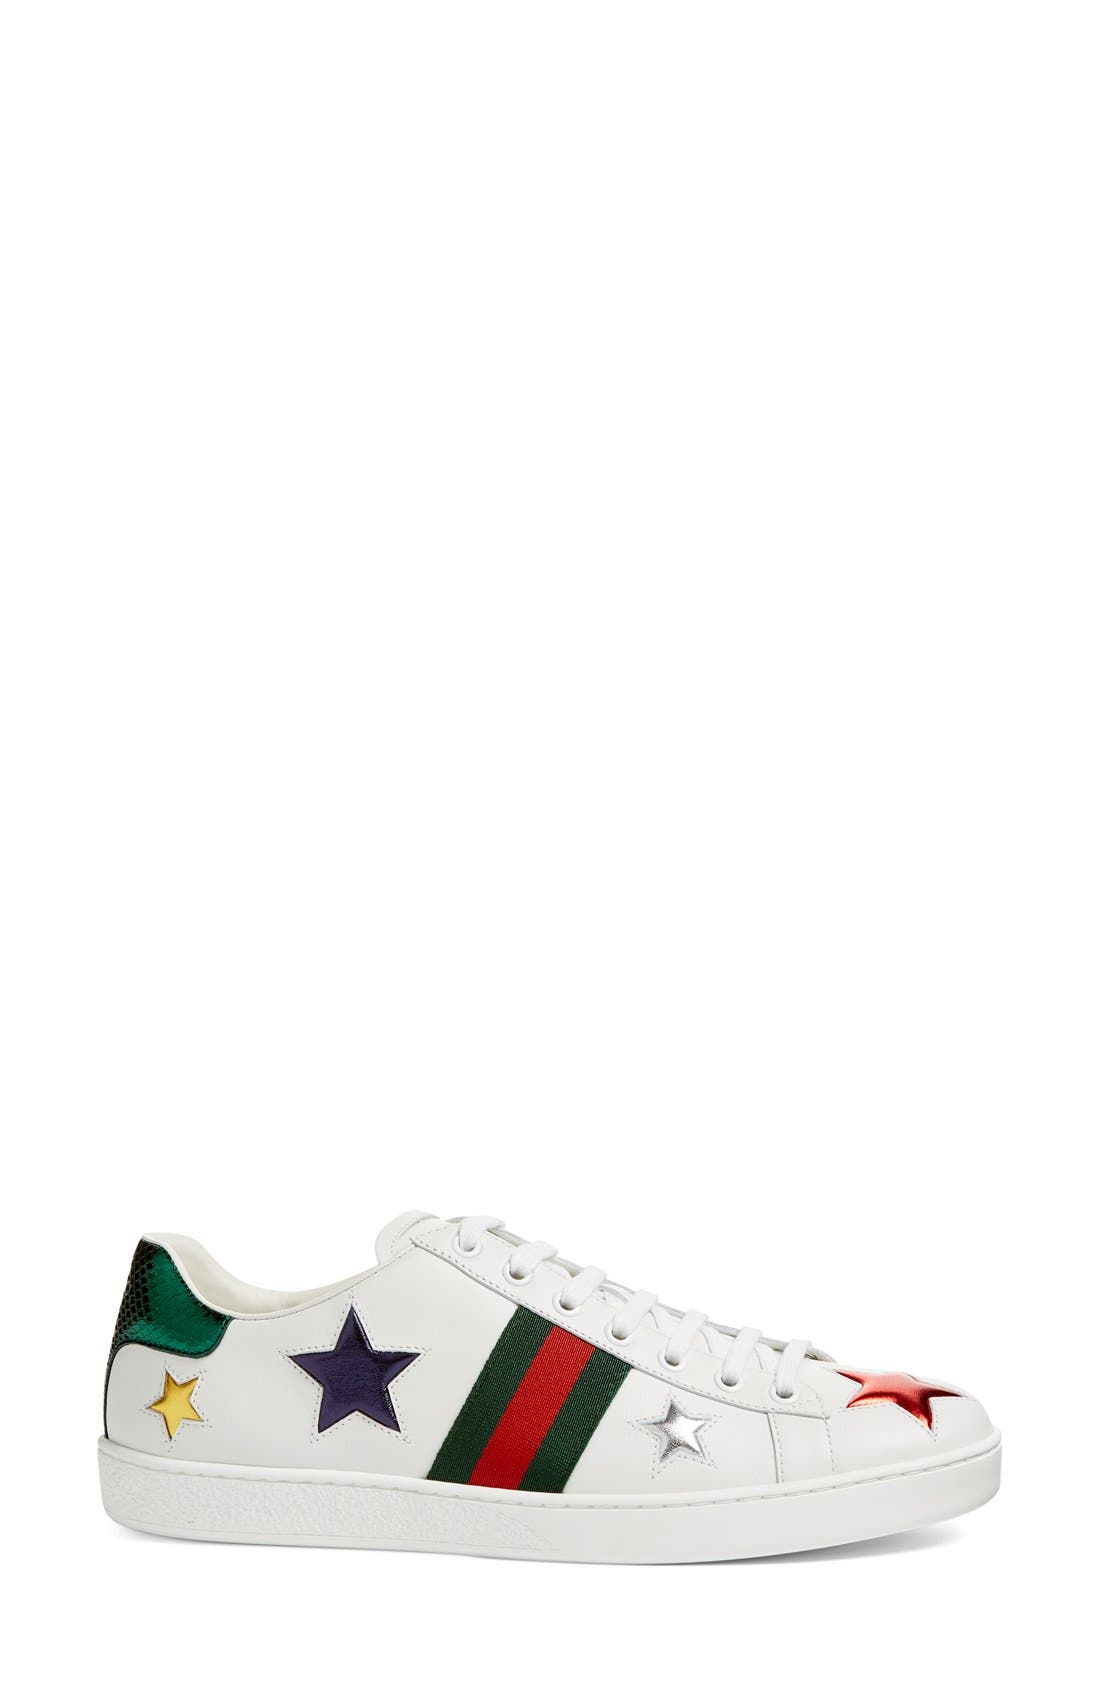 New Ace Star Sneaker,                             Alternate thumbnail 4, color,                             White Multi